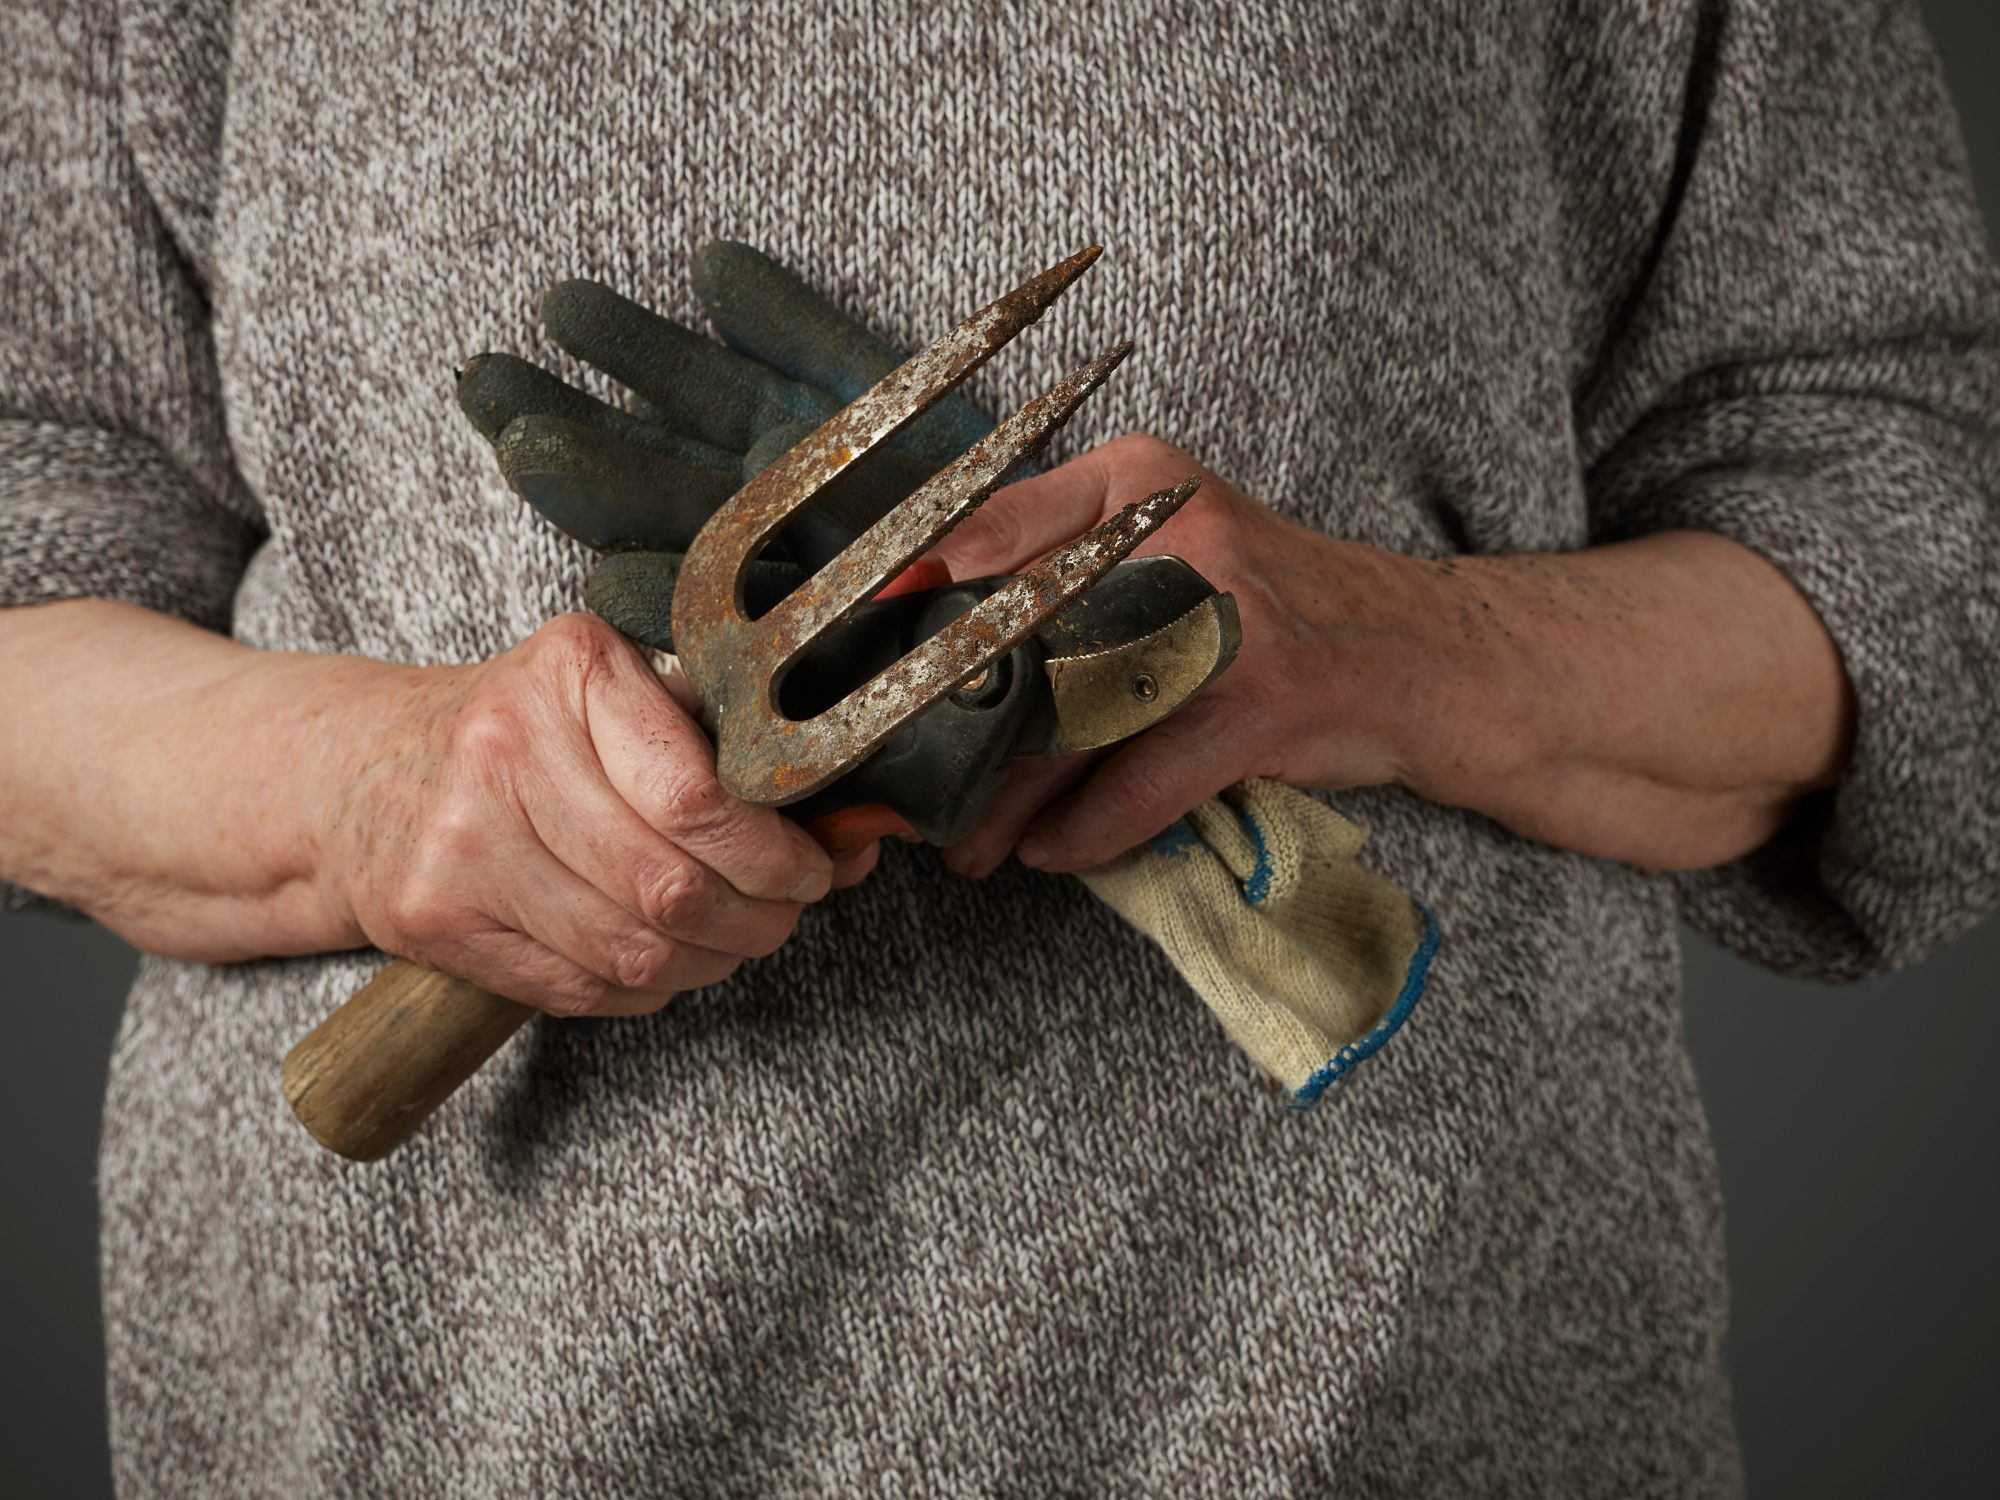 Woman Holding Gardening Gloves and Trowel